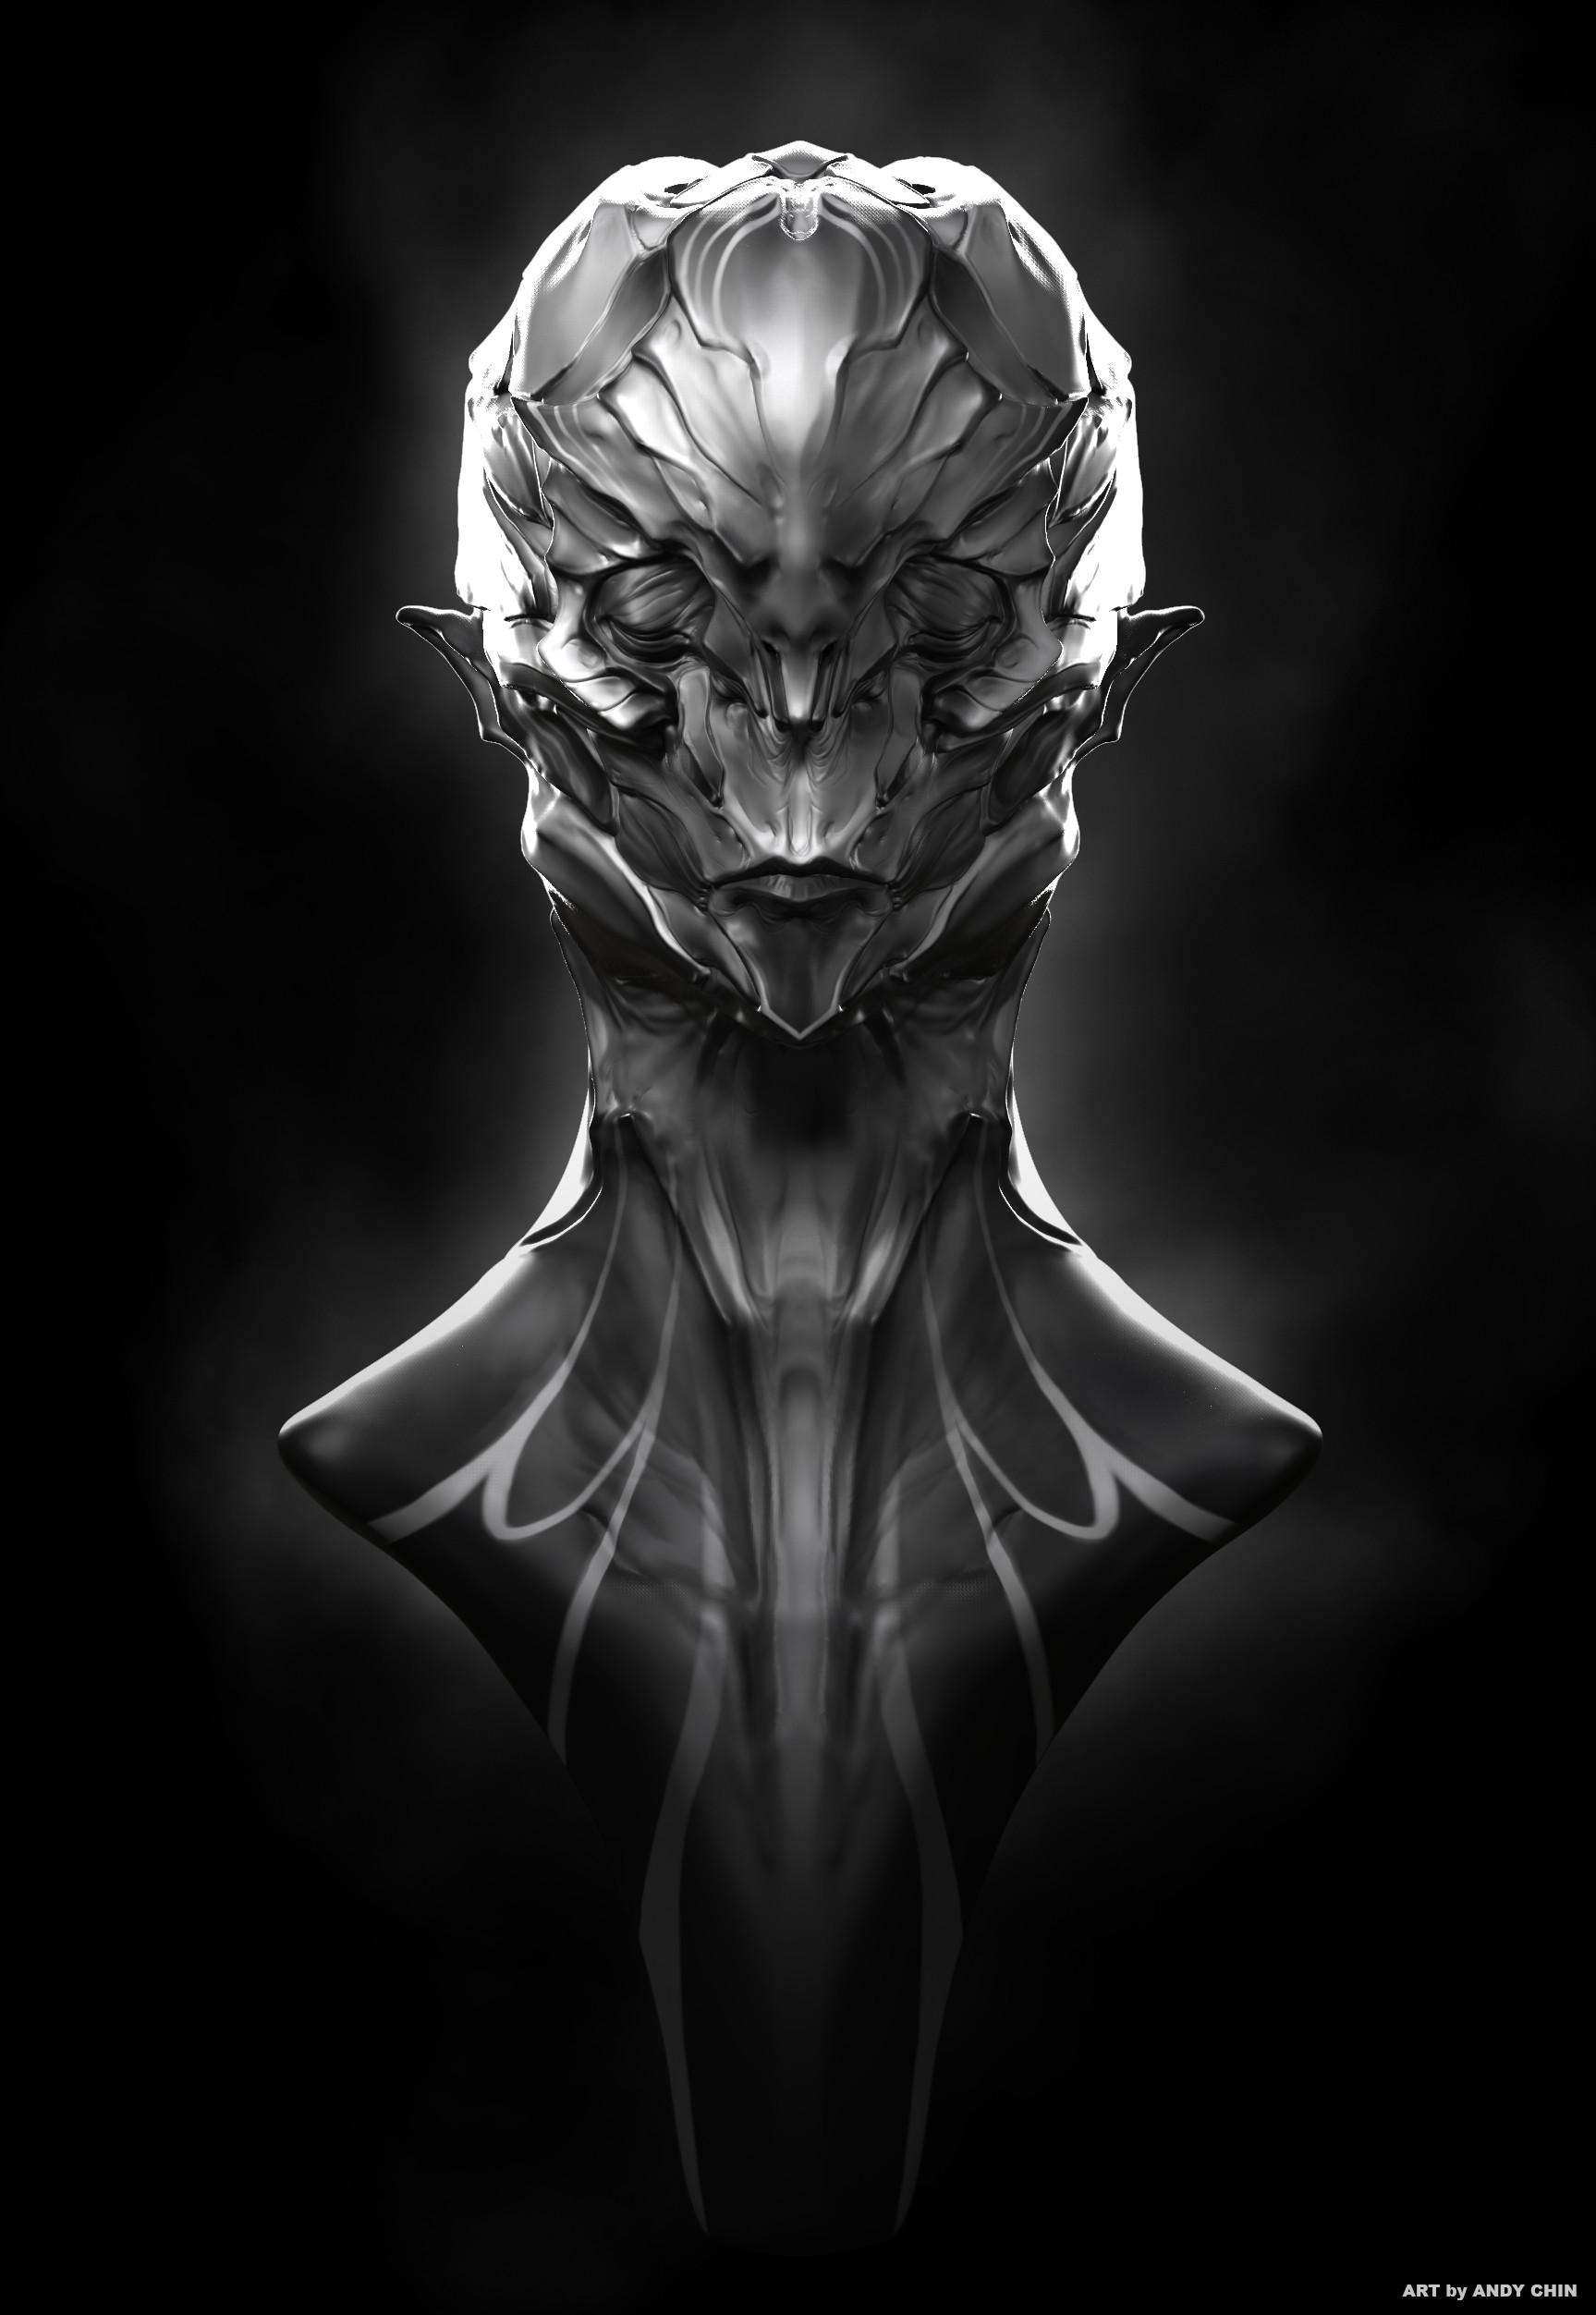 Andy chin skull elf bw